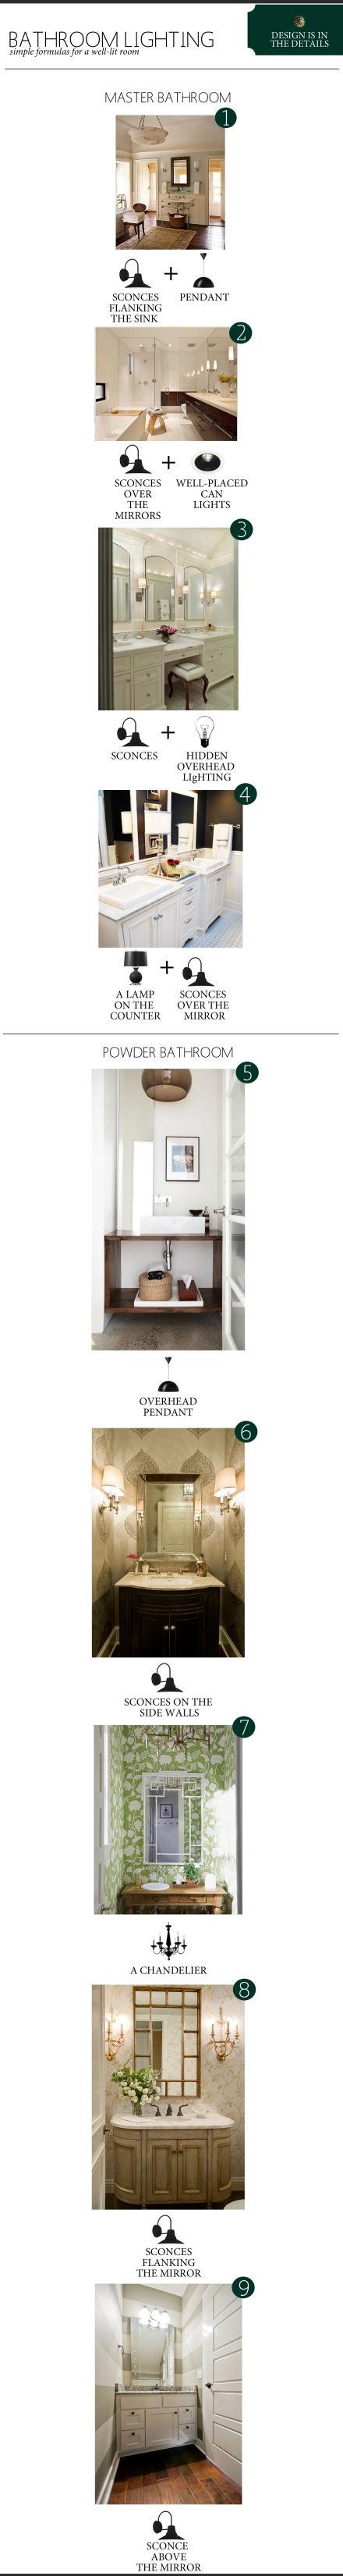 lighting-options-for-bathrooms copy